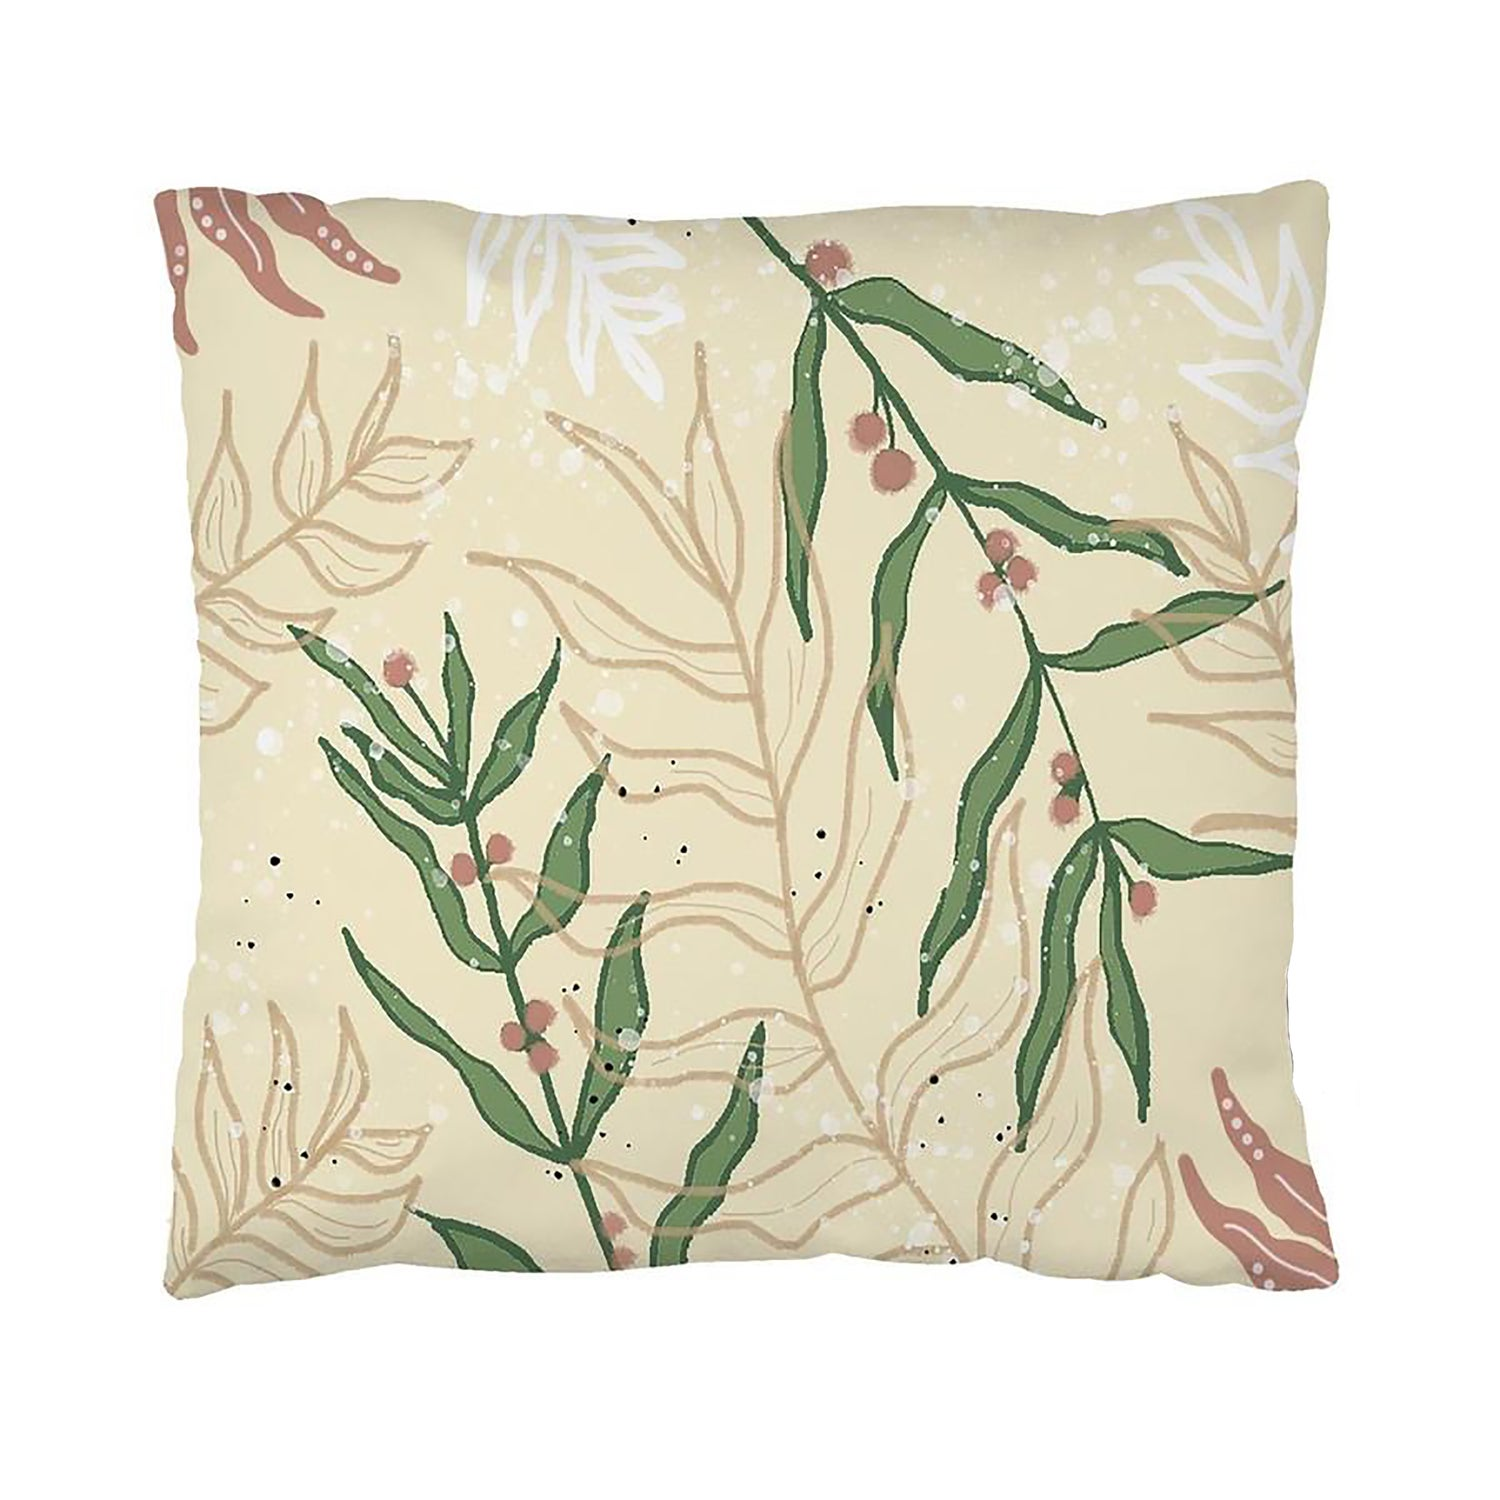 Image of Floral Decoration Pillow